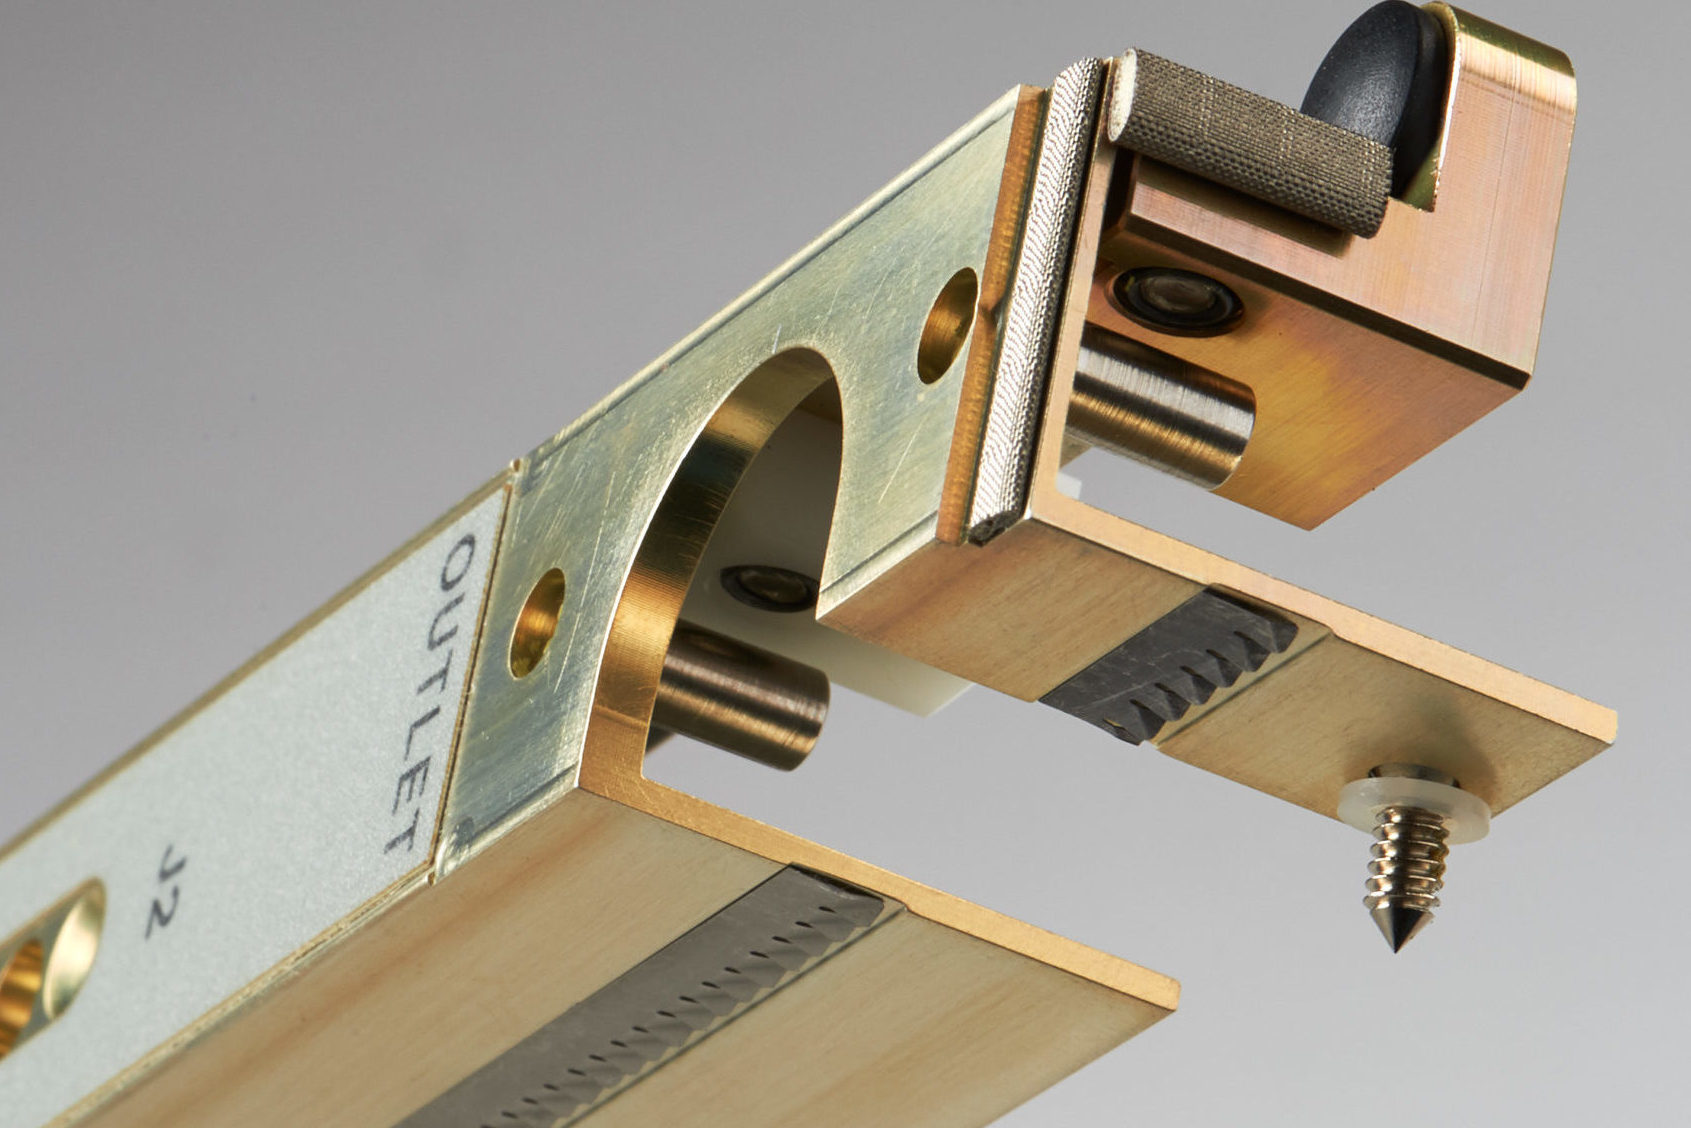 </p> <h4>MECHANICAL ASSEMBLY</h4> <p>